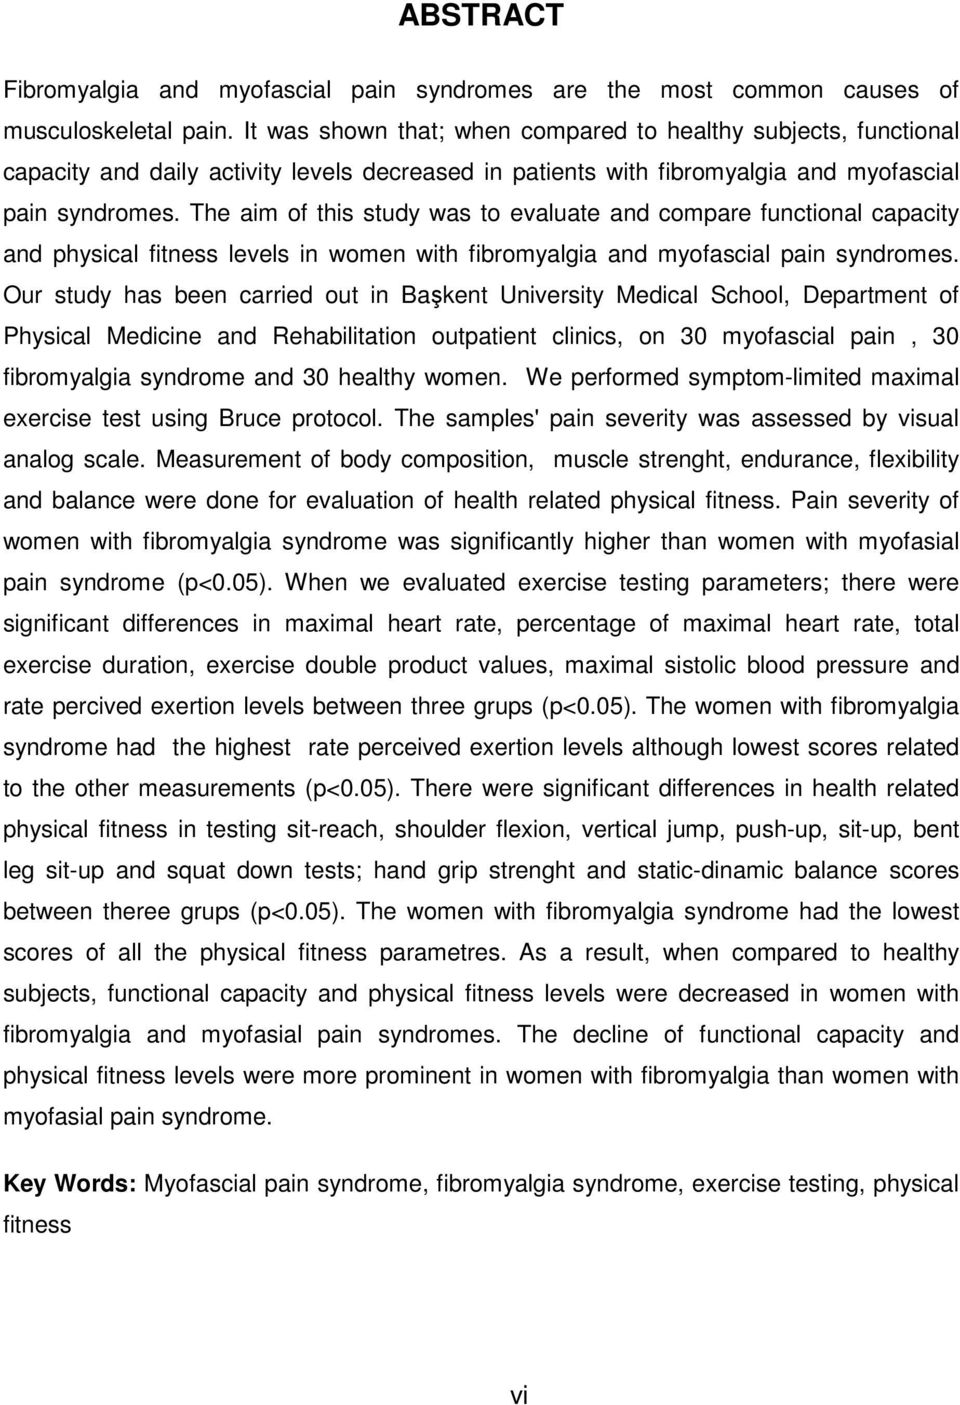 The aim of this study was to evaluate and compare functional capacity and physical fitness levels in women with fibromyalgia and myofascial pain syndromes.